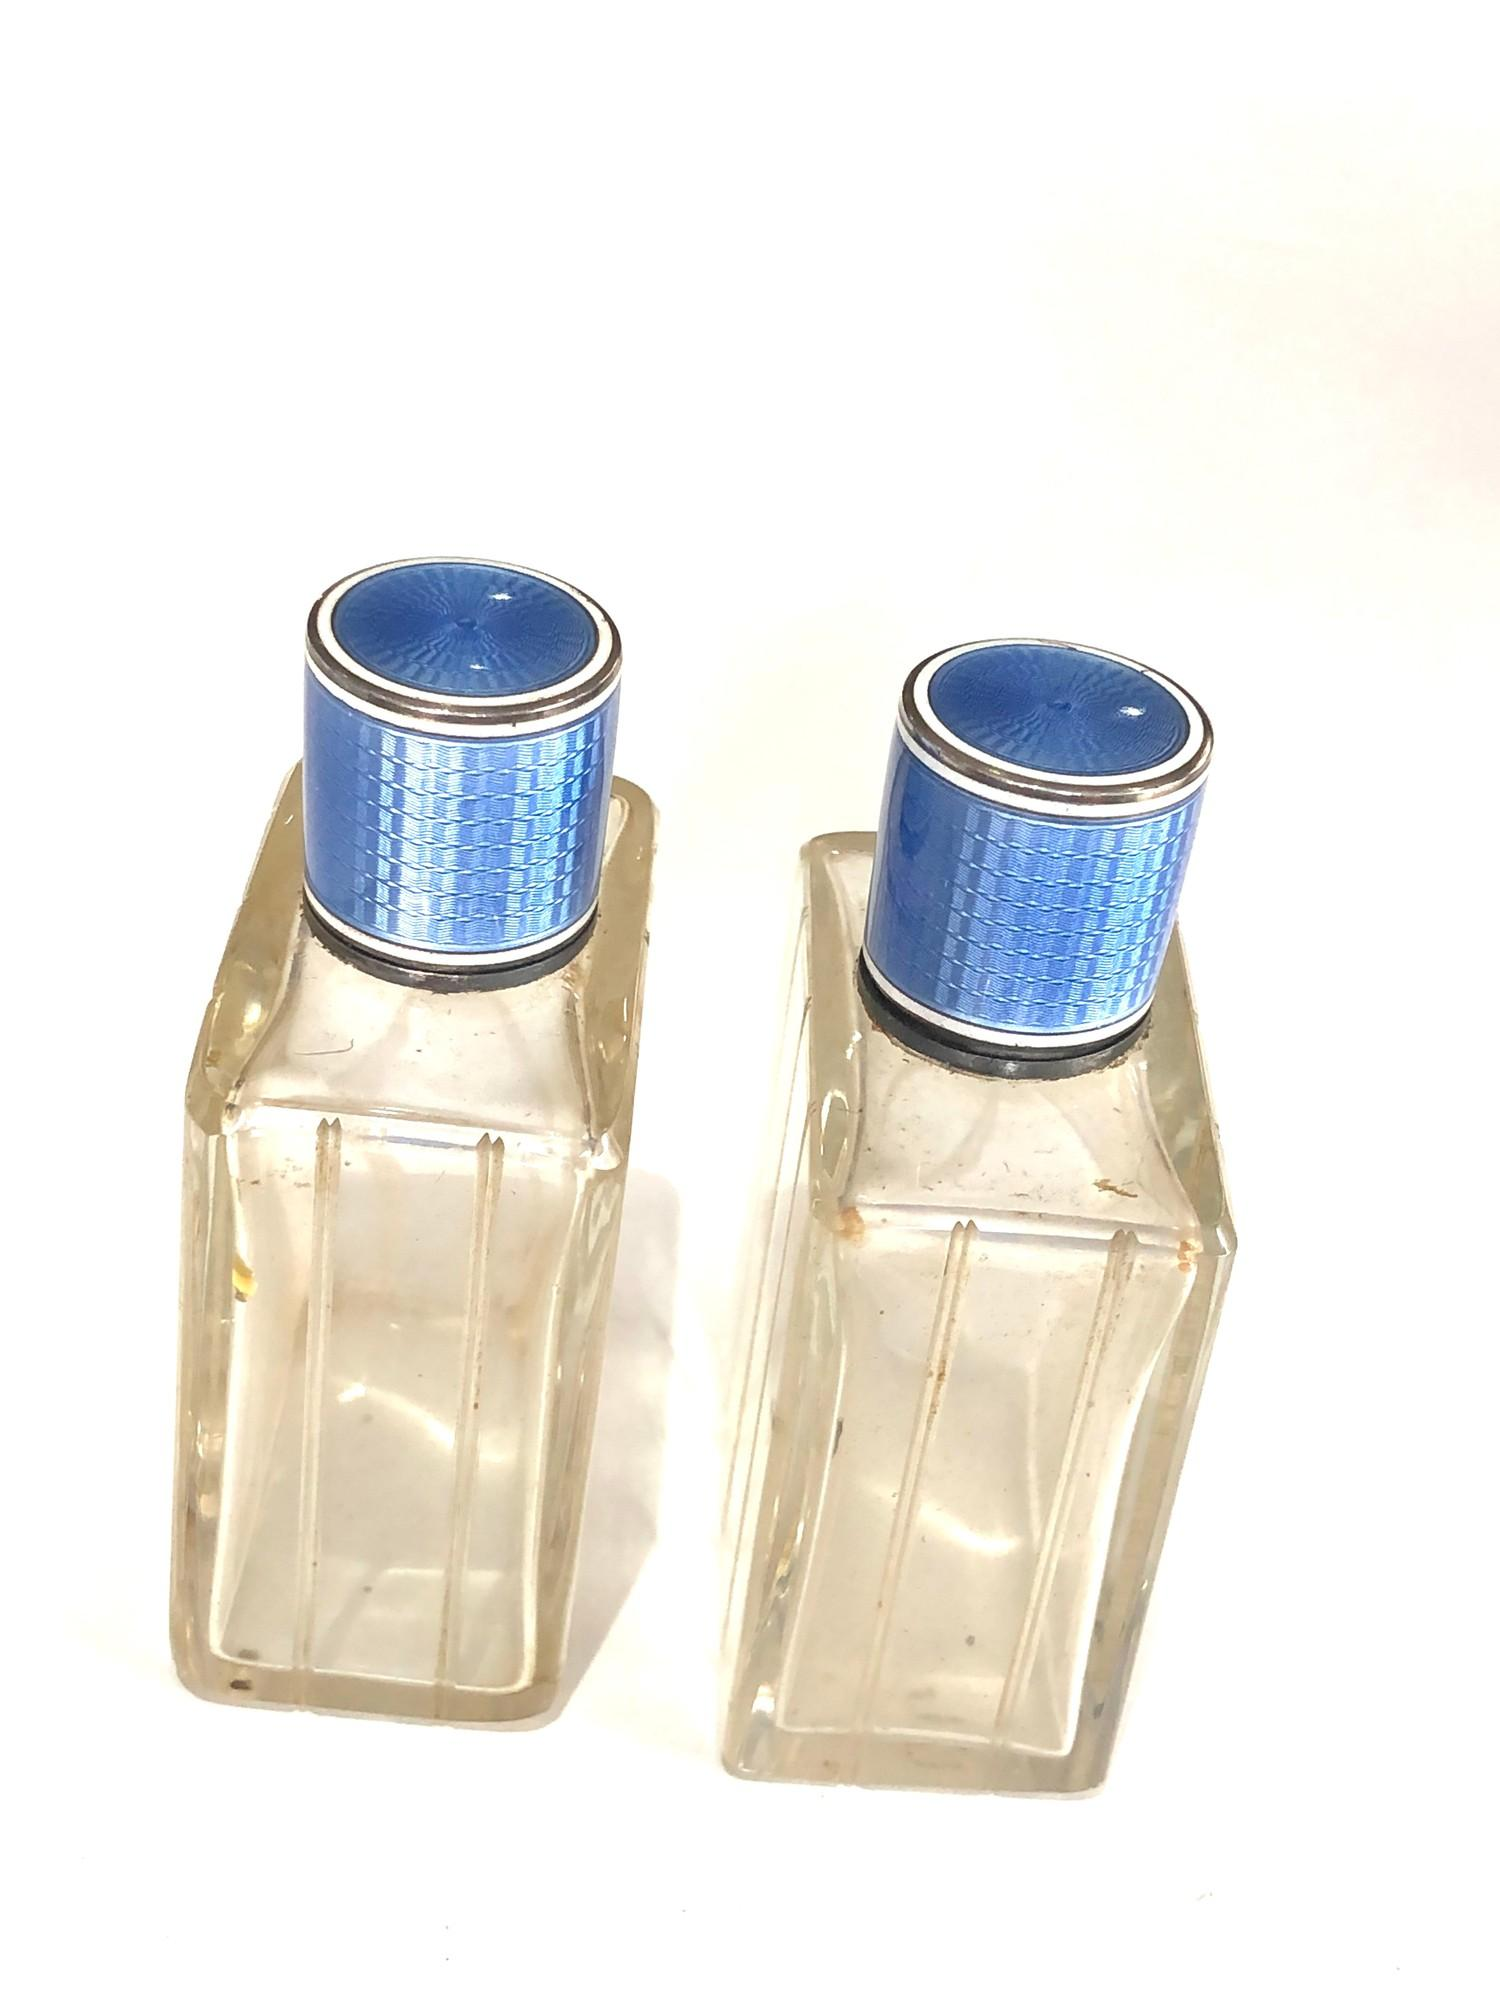 Pair of antique French silver and enamel perfume bottles complete with stoppers in good uncleaned - Image 2 of 8